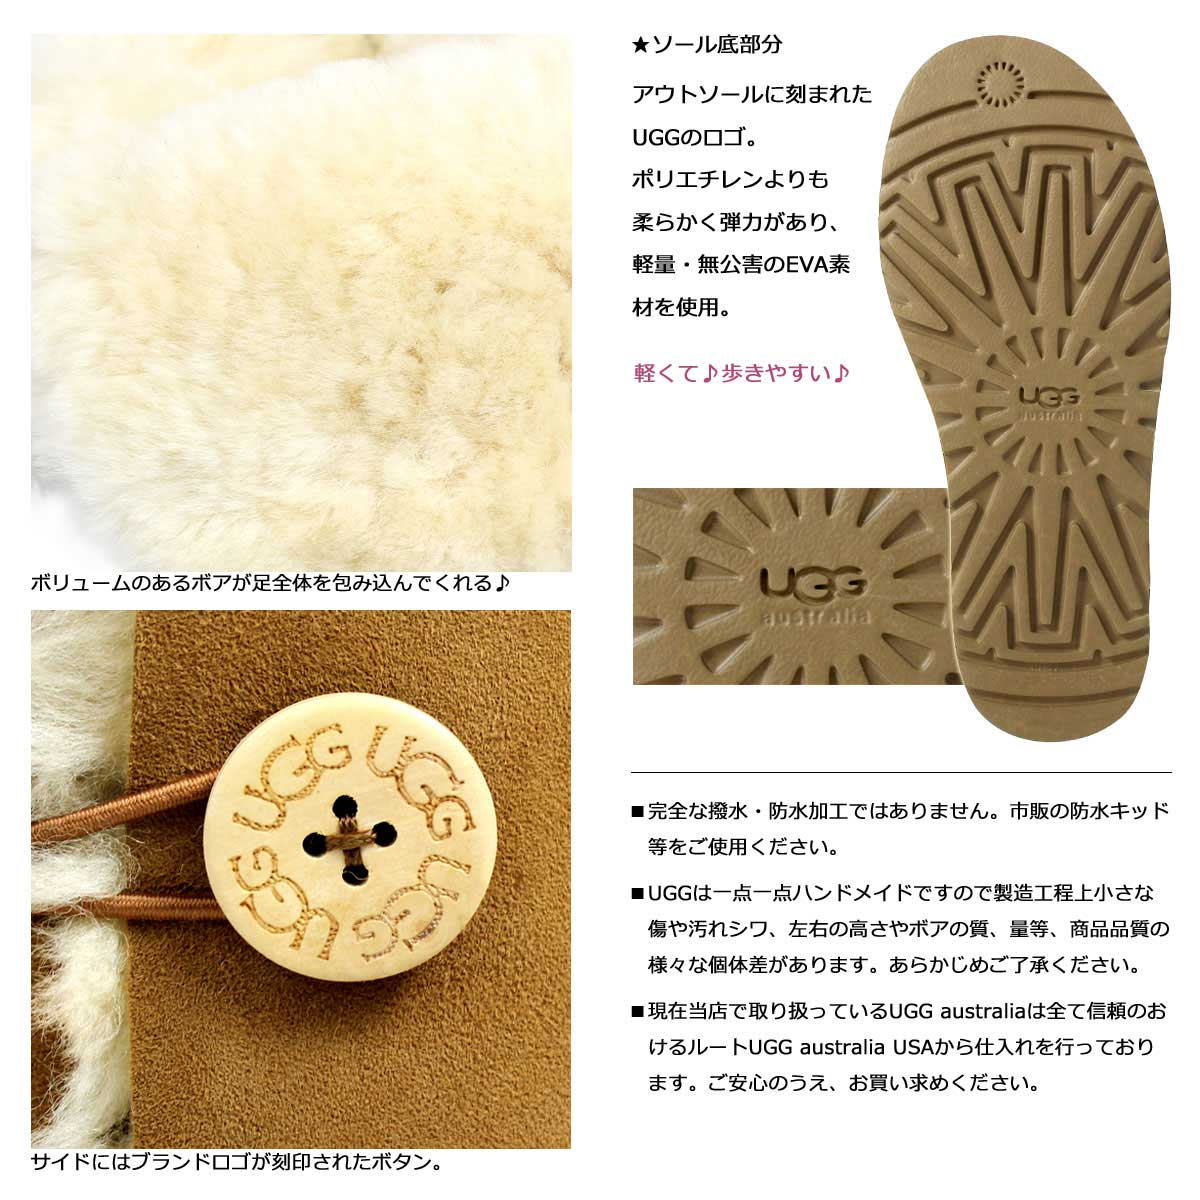 «Reservation products» «10 / 10 around in stock plans-2» ★ 38% off ★ UGG UGG Bailey button boots 5803 WOMENS BAILEY BUTTON Sheepskin ladies FALL 2013 new